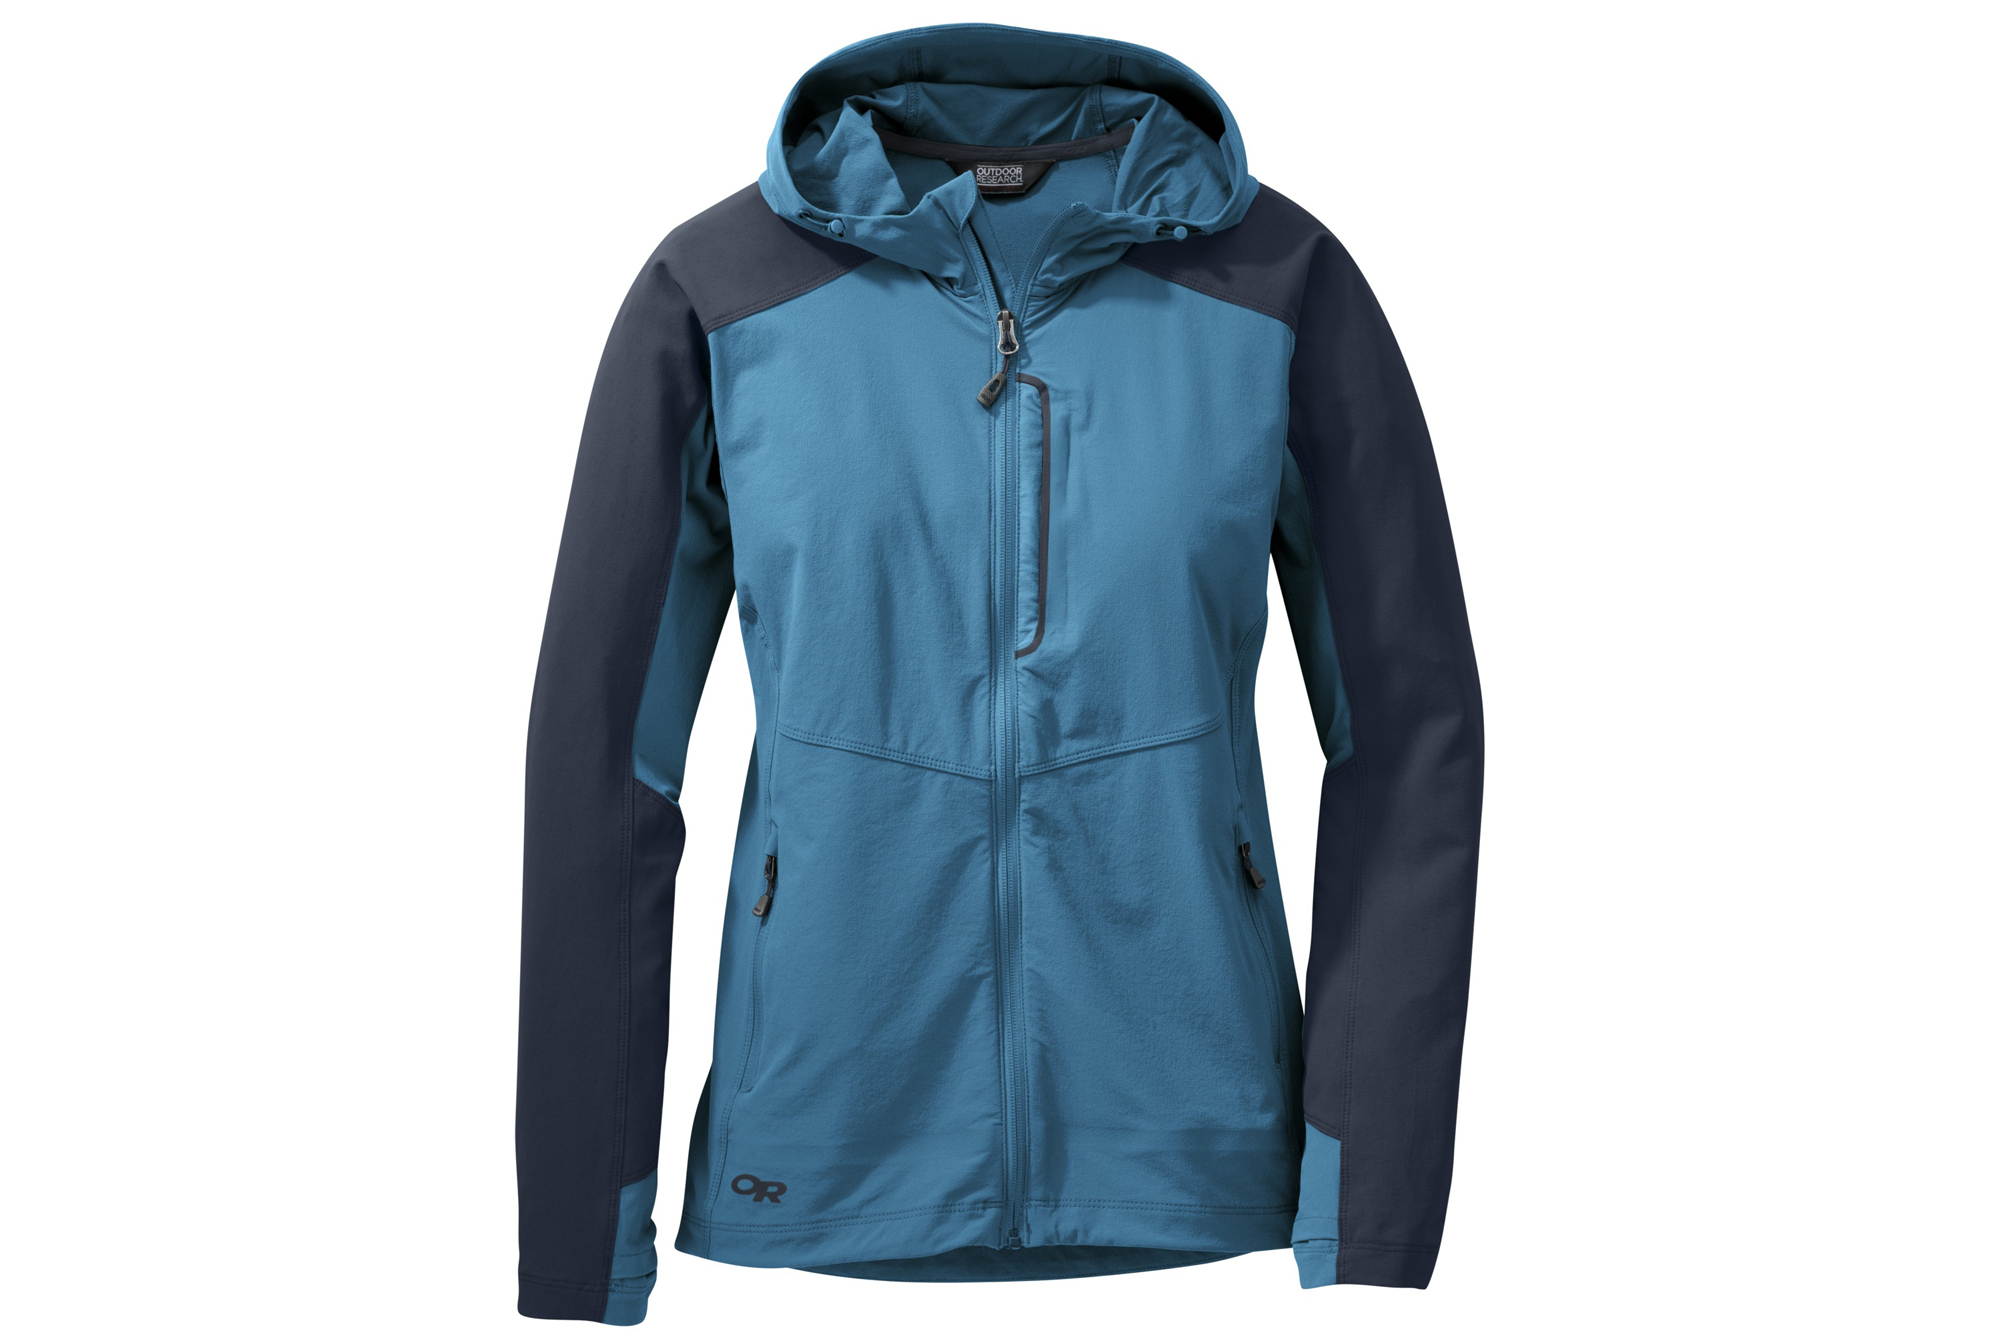 e903e5717 Protect yourself from intermittent showers or sudden mountaintop gusts with  the Ferrosi Hooded jacket. Outdoor Research placed tough Cordura fabric on  the ...